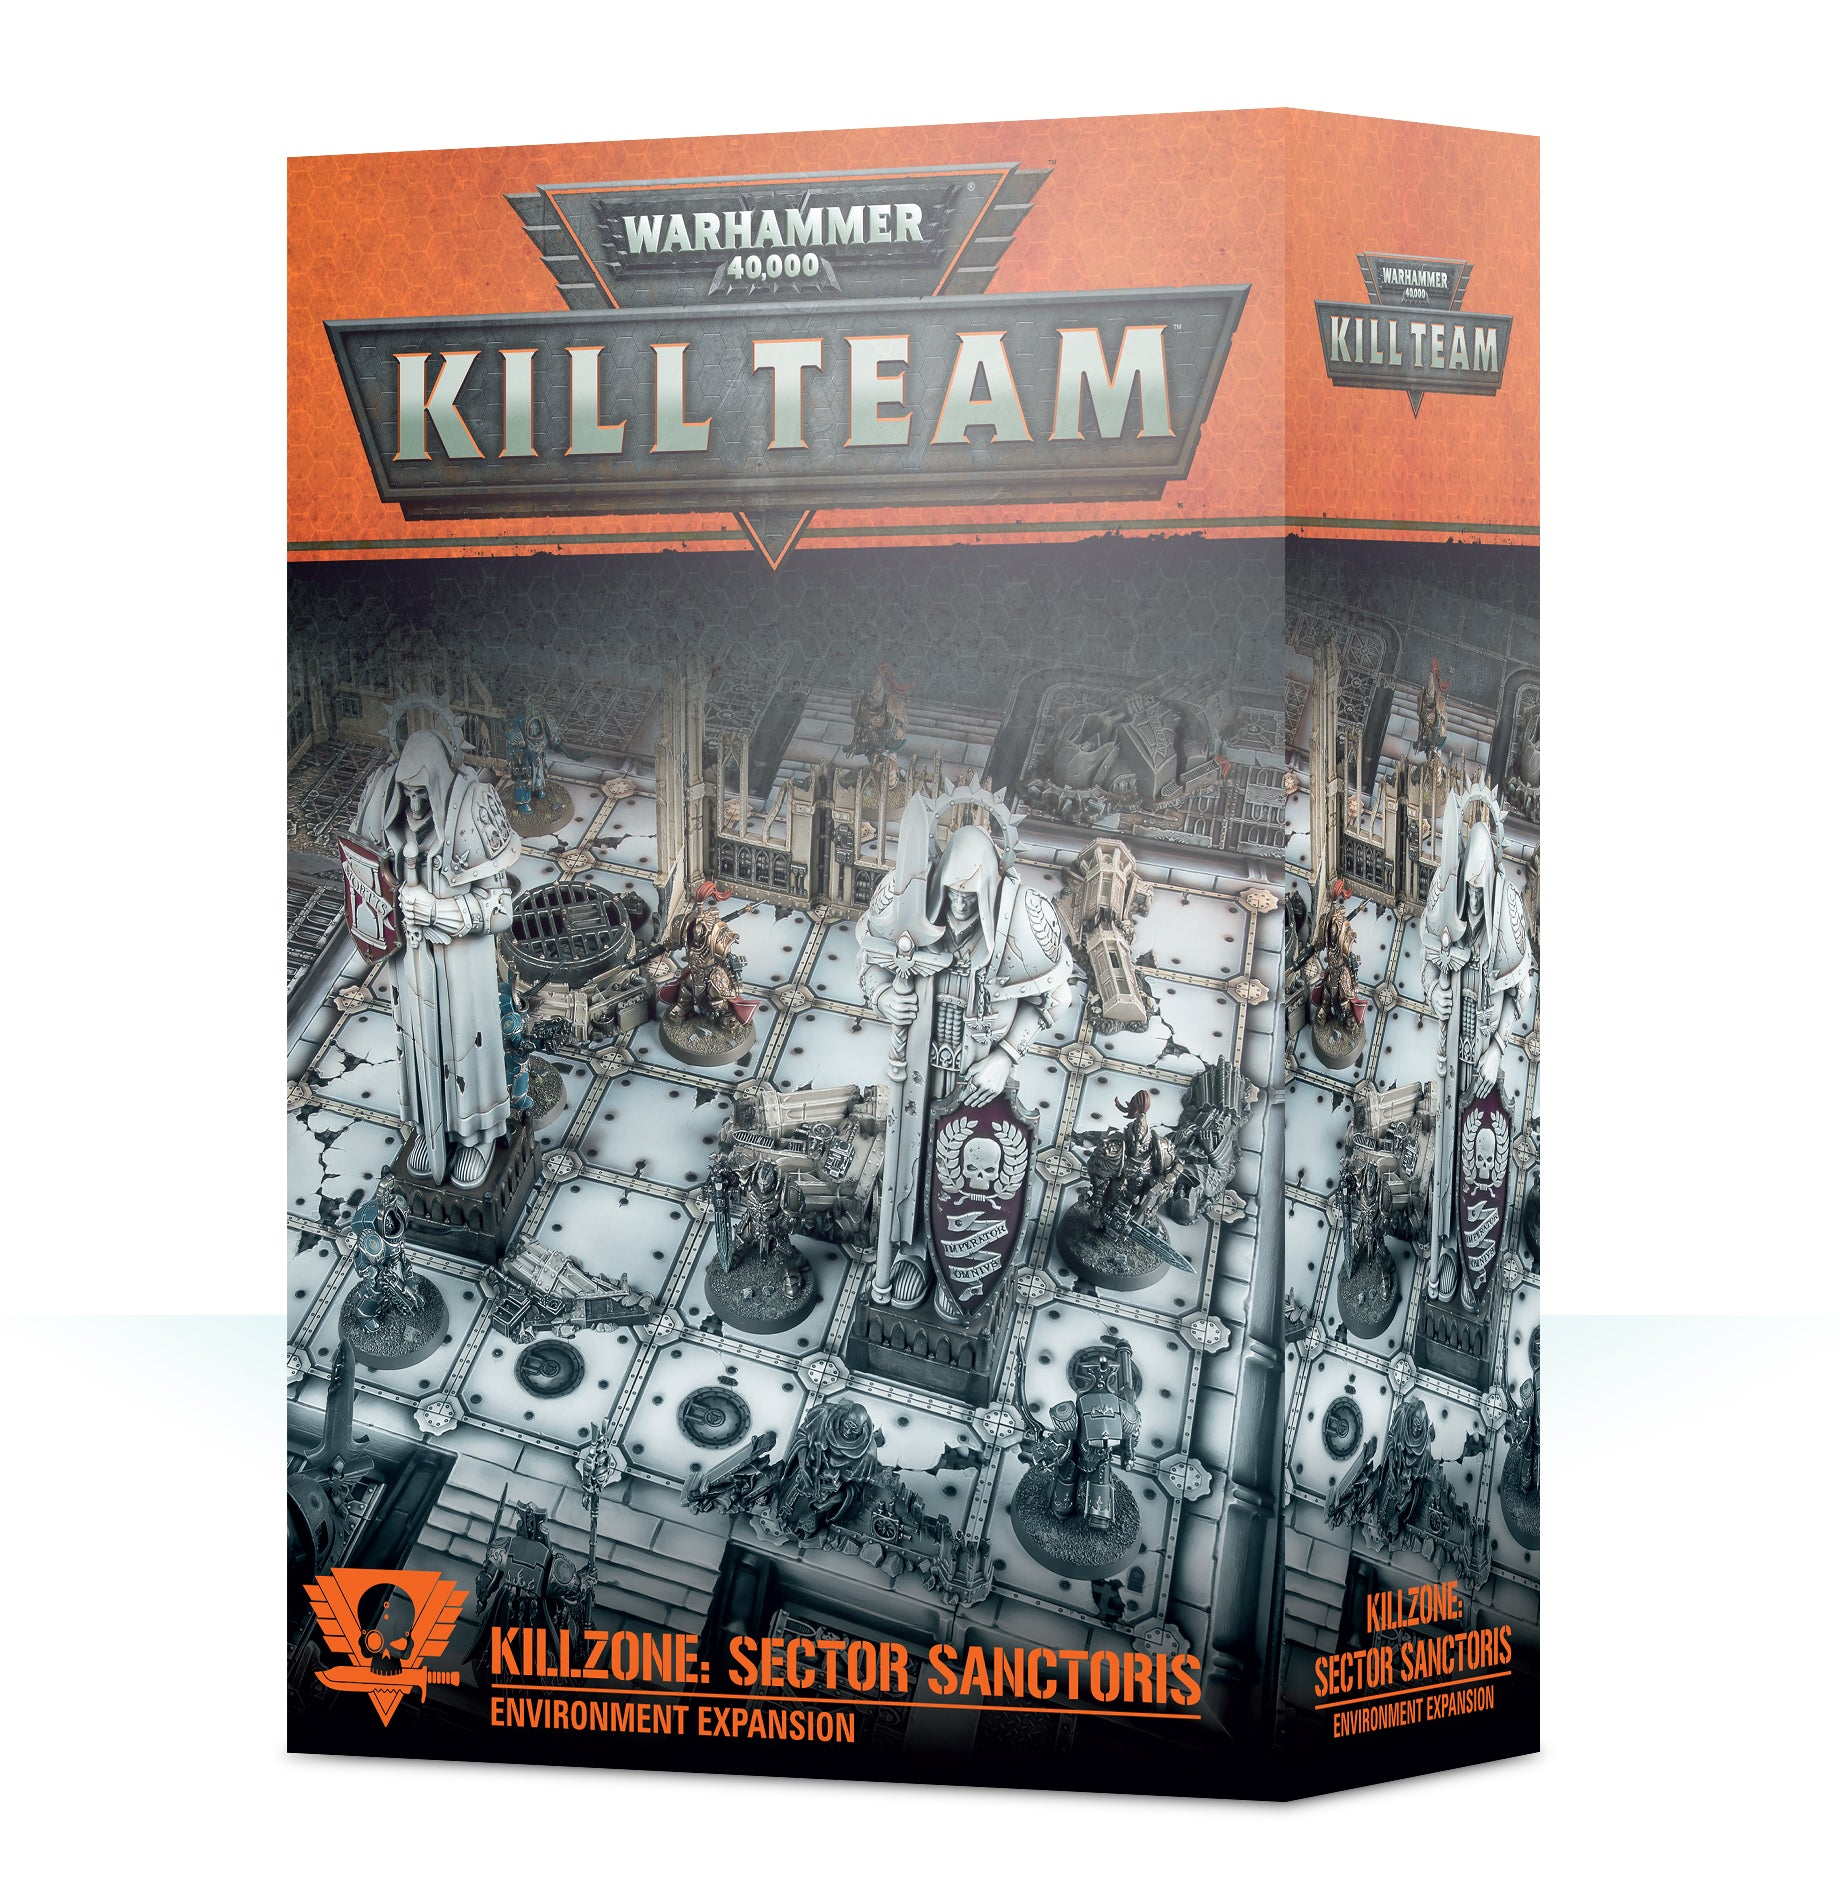 Killzone: Sector Sanctoris (Out of Print) | Mythicos